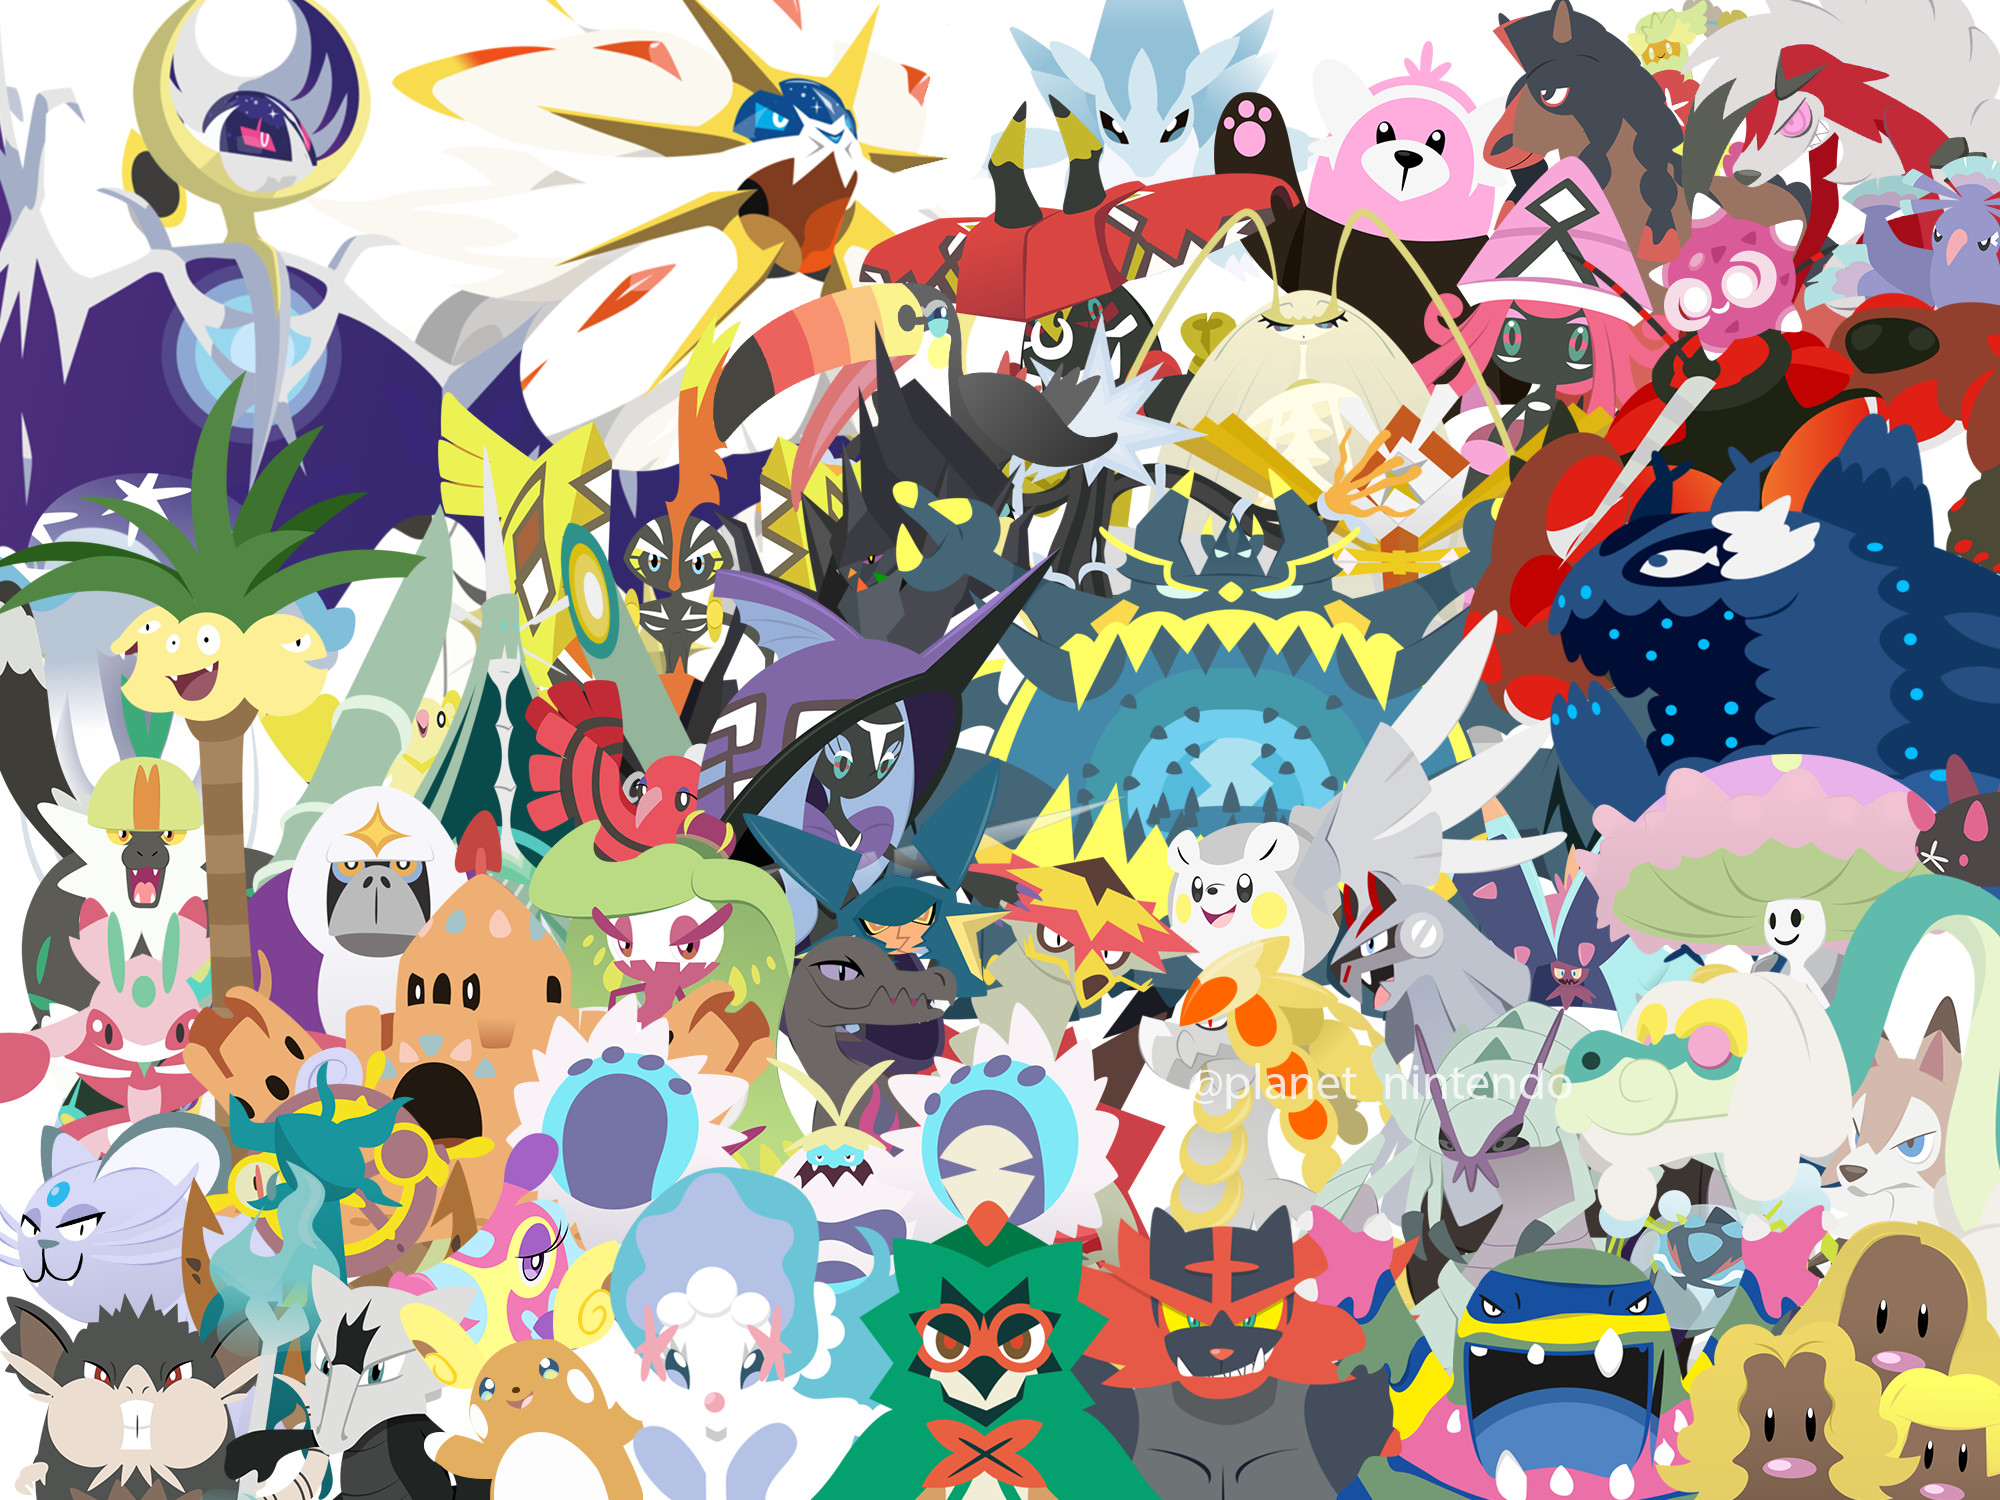 2000x1500 ... Pokemon Sun and Moon Wallpaper by PlanetNintendo